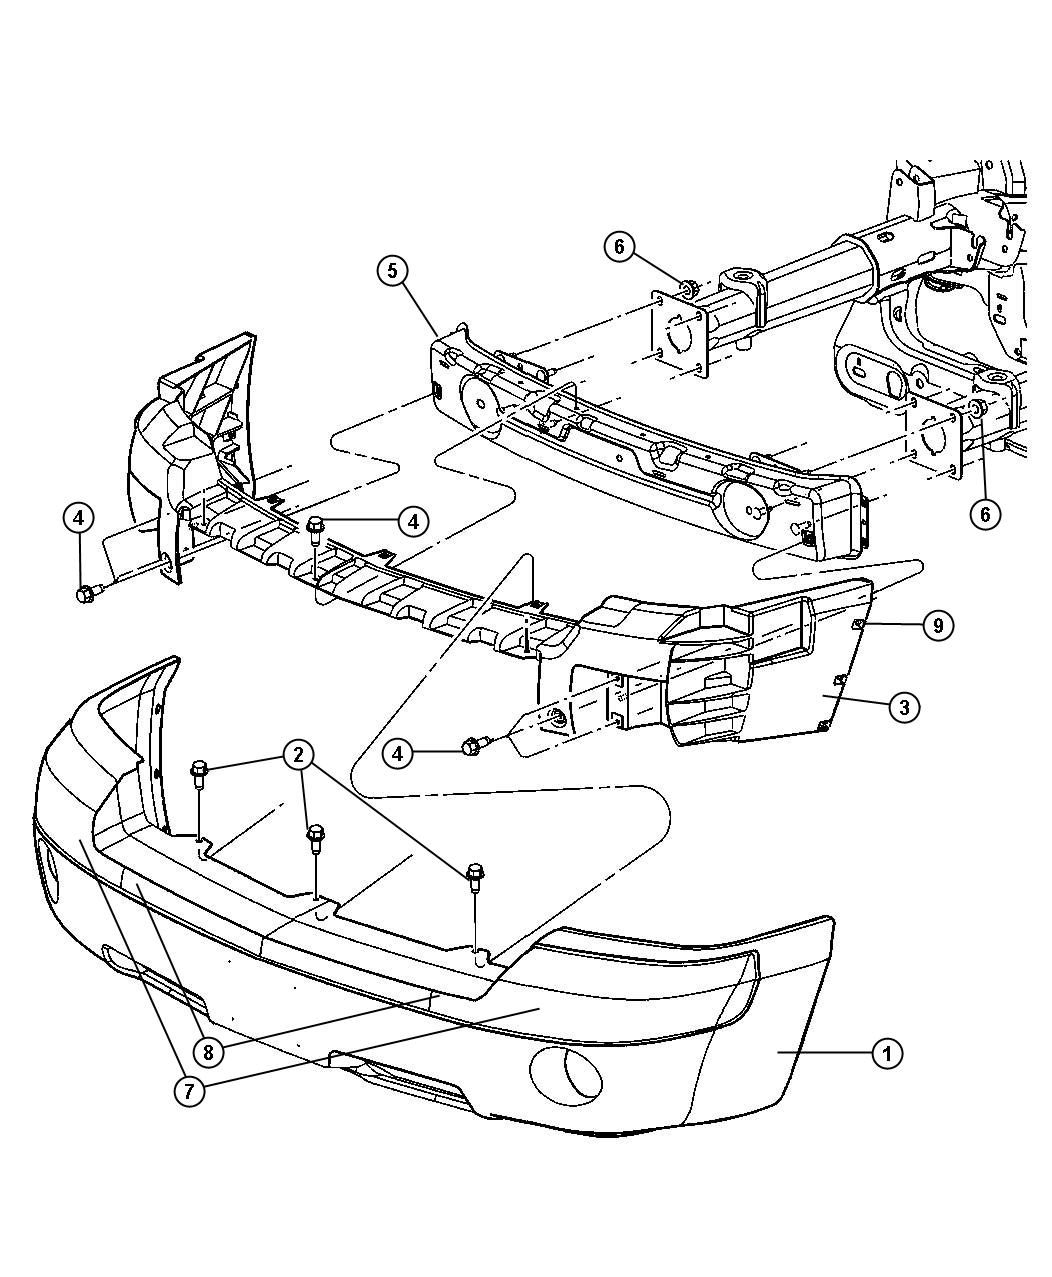 2000 Chrysler Grand Voyager 3 Wiring Diagrams on chrysler town and country parts diagram